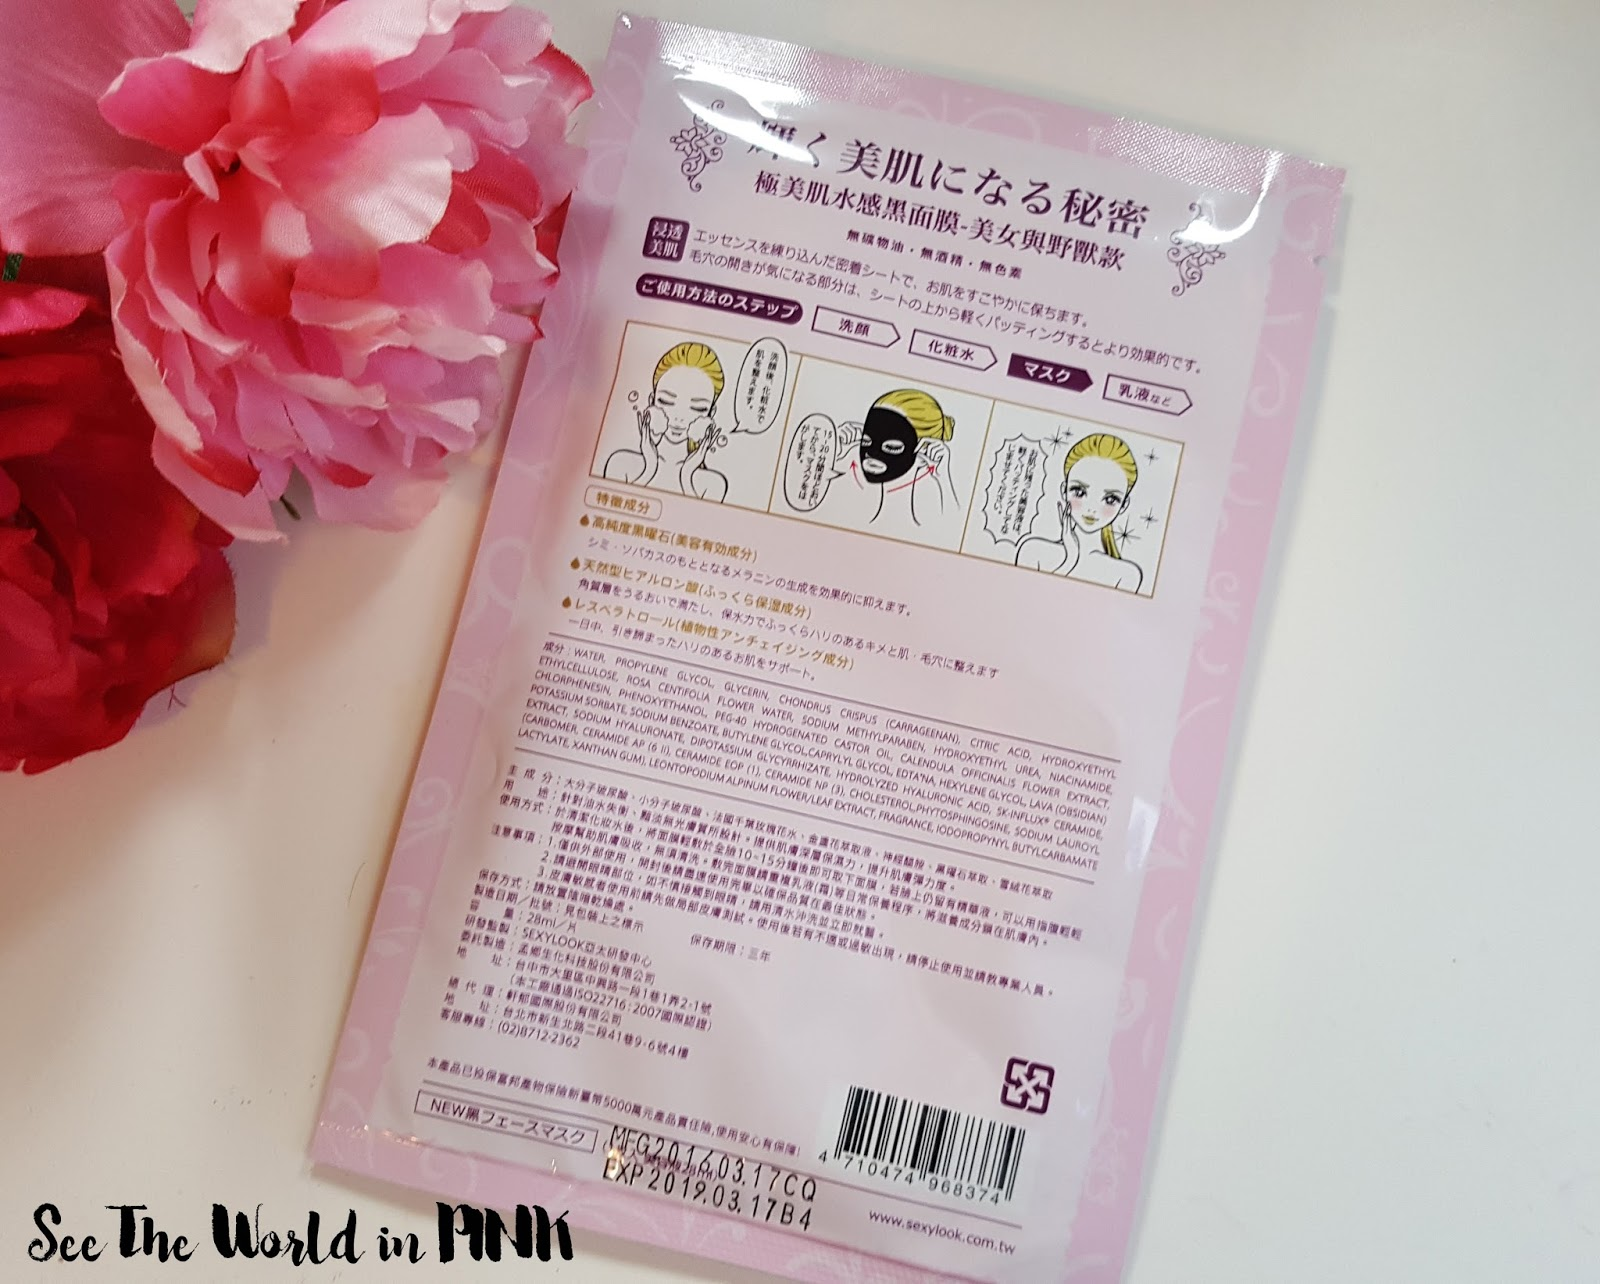 Mask Wednesday - Sexylook x Disney Princess Belle Mask